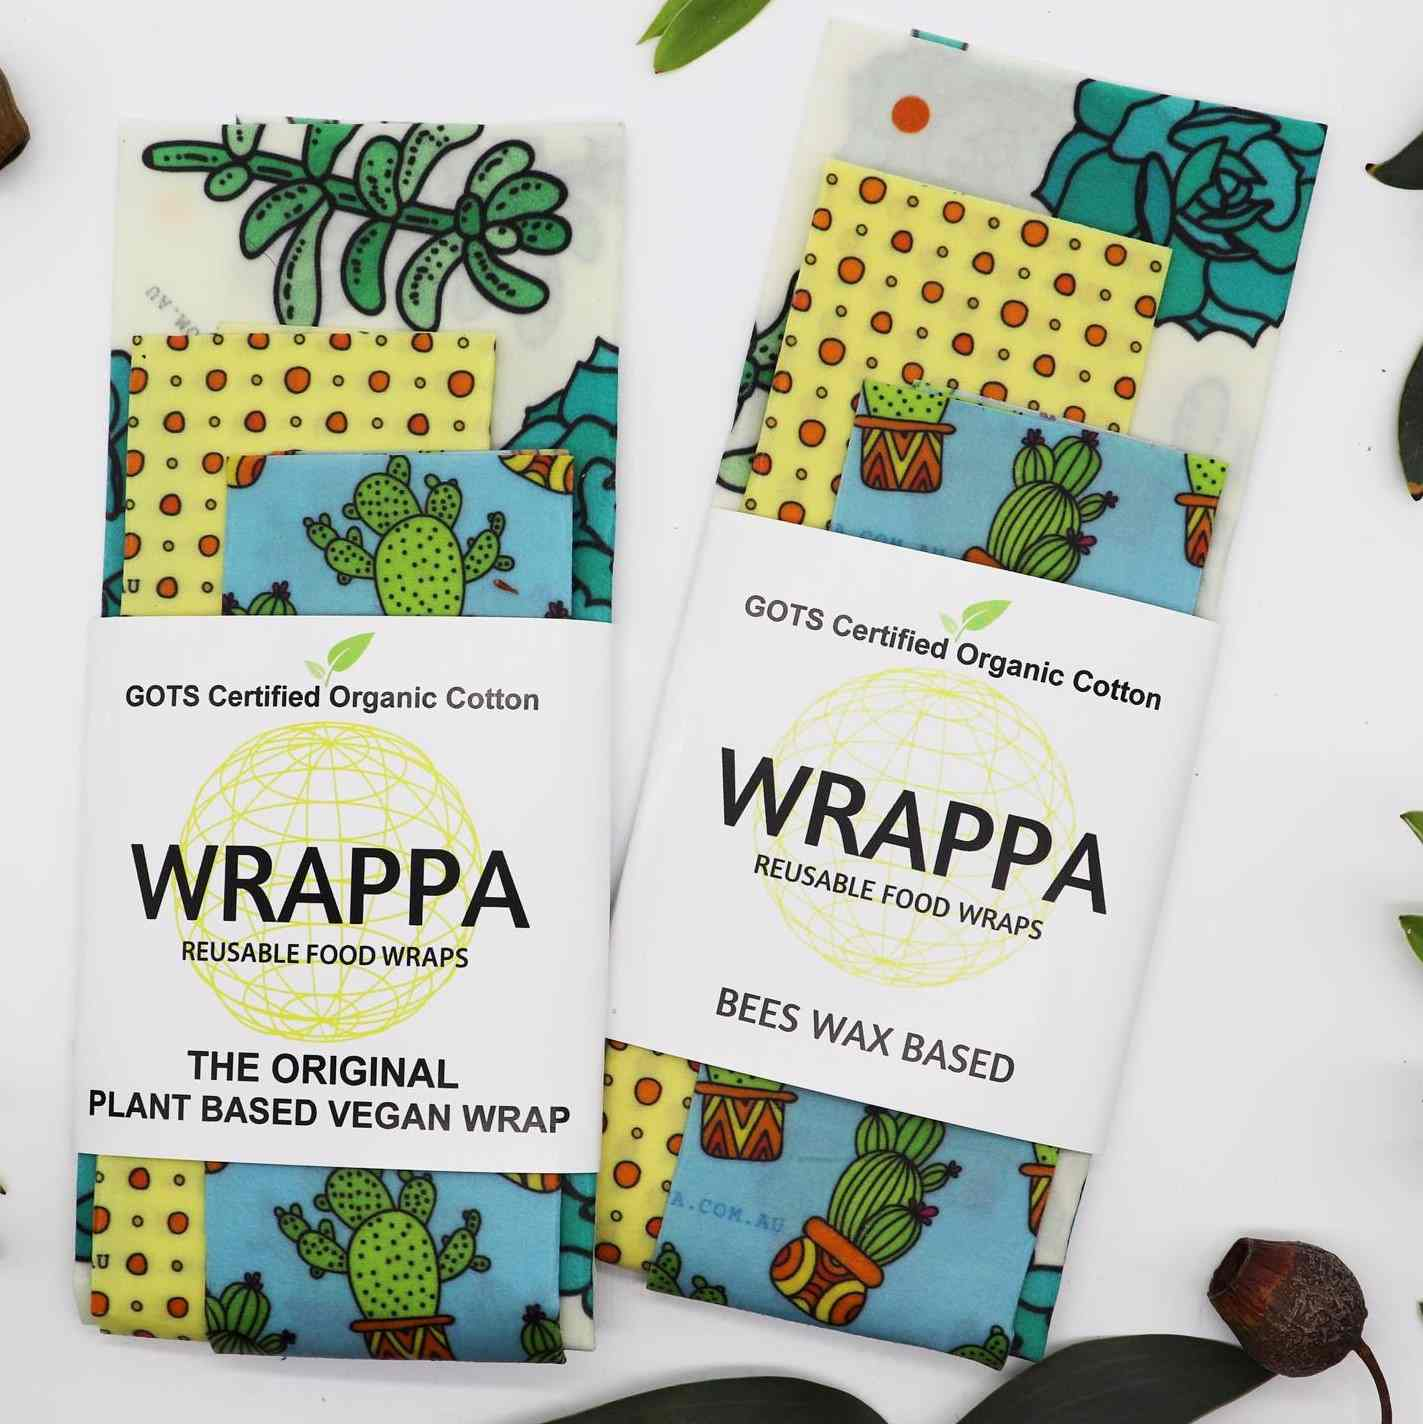 Wrappa Beeswax/Vegan Wraps, Cacti & Succulents, 3 pack